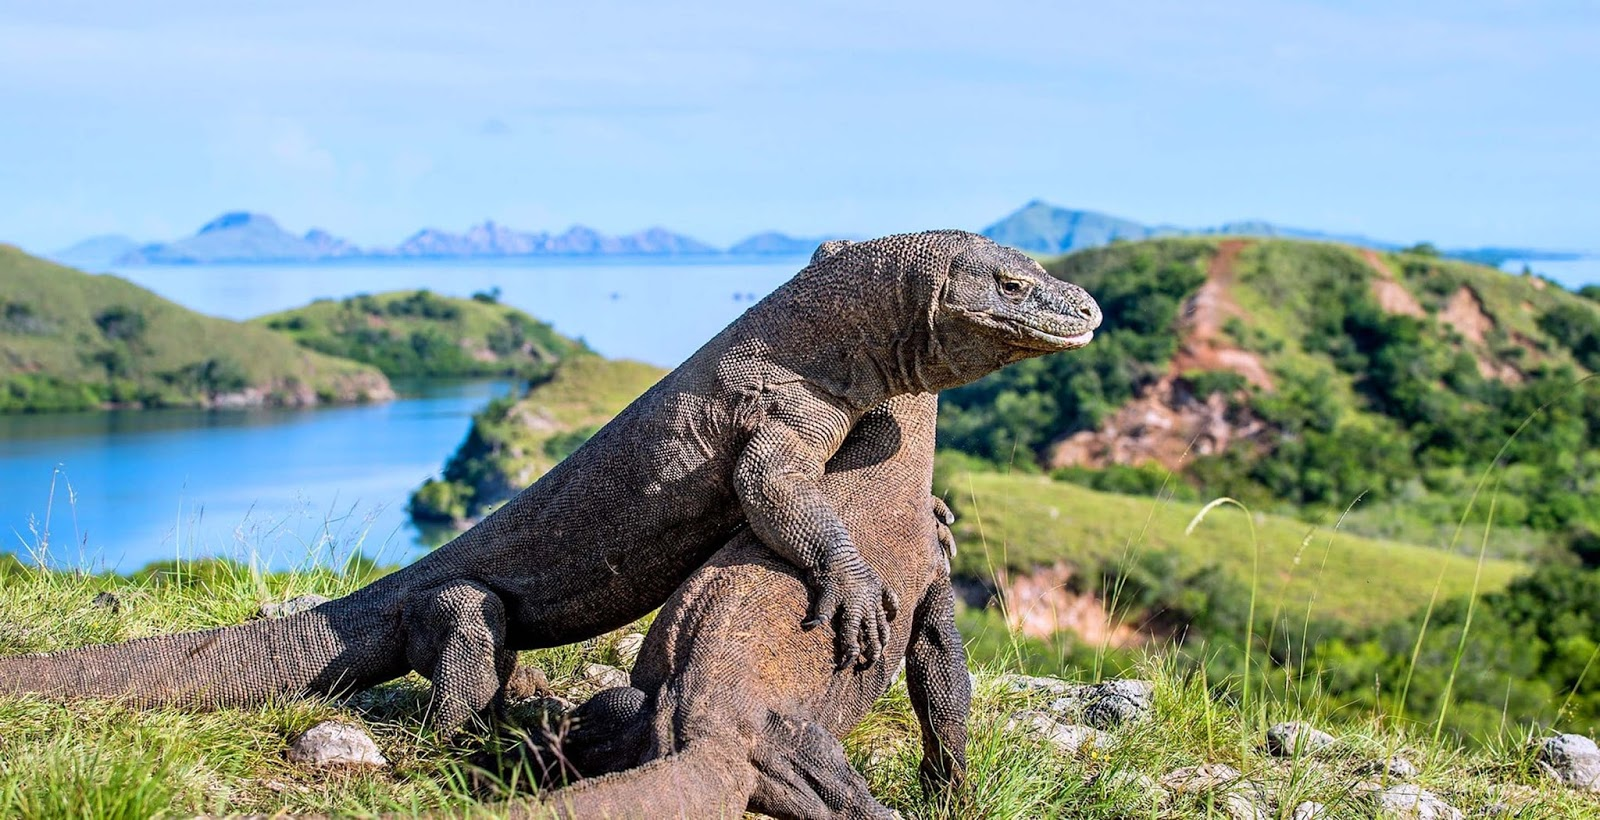 Komodo Island is located in the province of East Nusa Tenggara, precisely in the district of Komodo, West Manggarai regency. Komodo Island is the most brat tip of the province of NTT, which borders the province of West Nusa Tenggara.